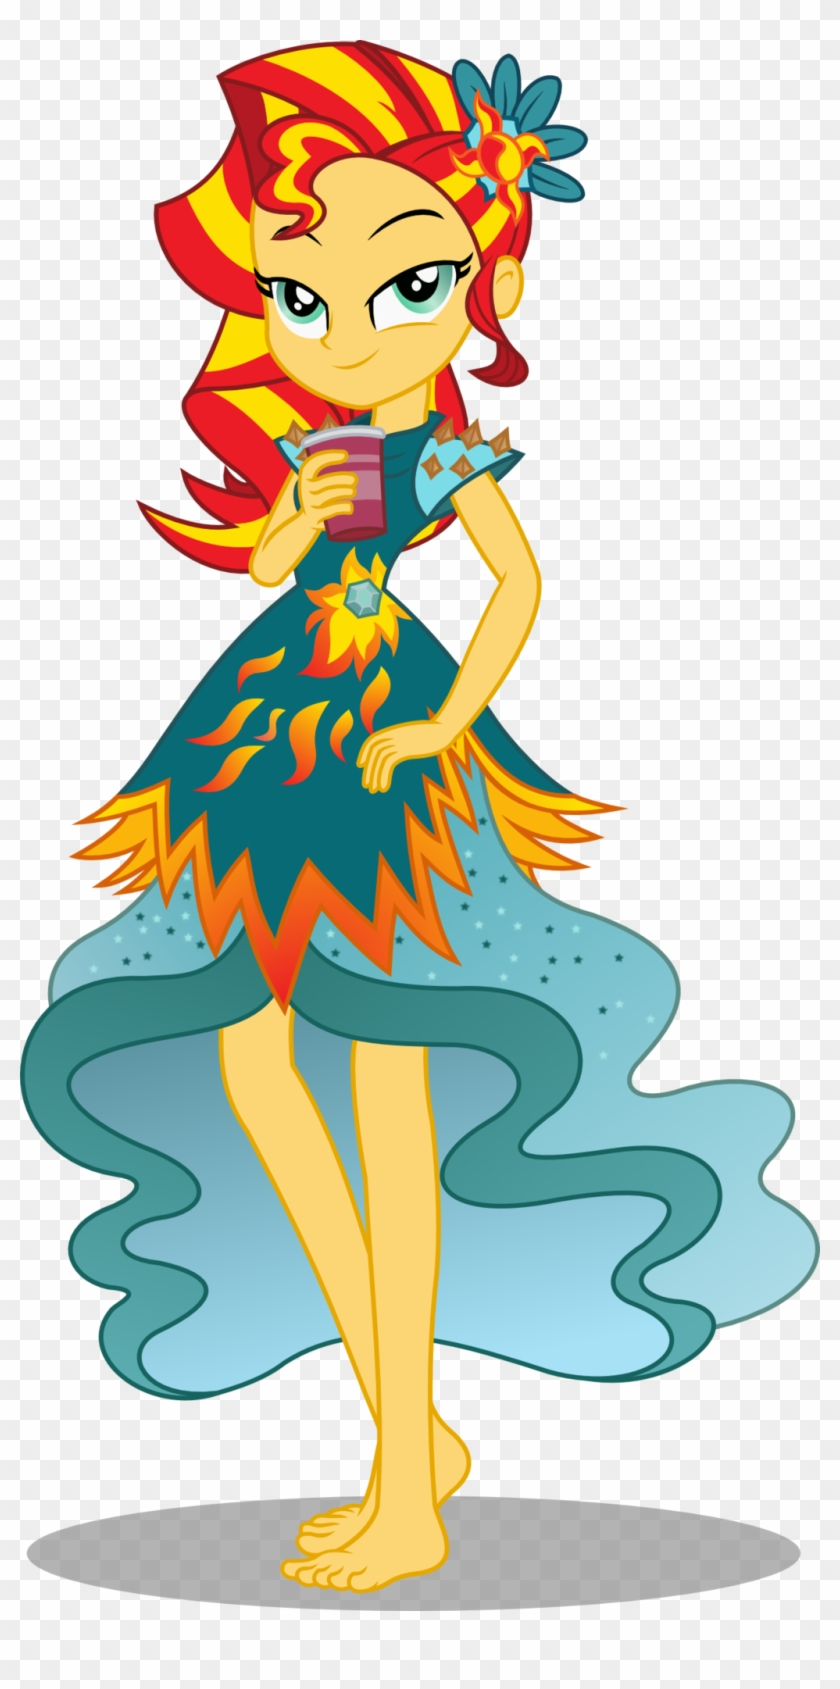 Seahawk270, Barefoot, Beverage, Clothes, Crystal Gala, - Equestria Girls Legend Of Everfree Sunset Shimmer #194757